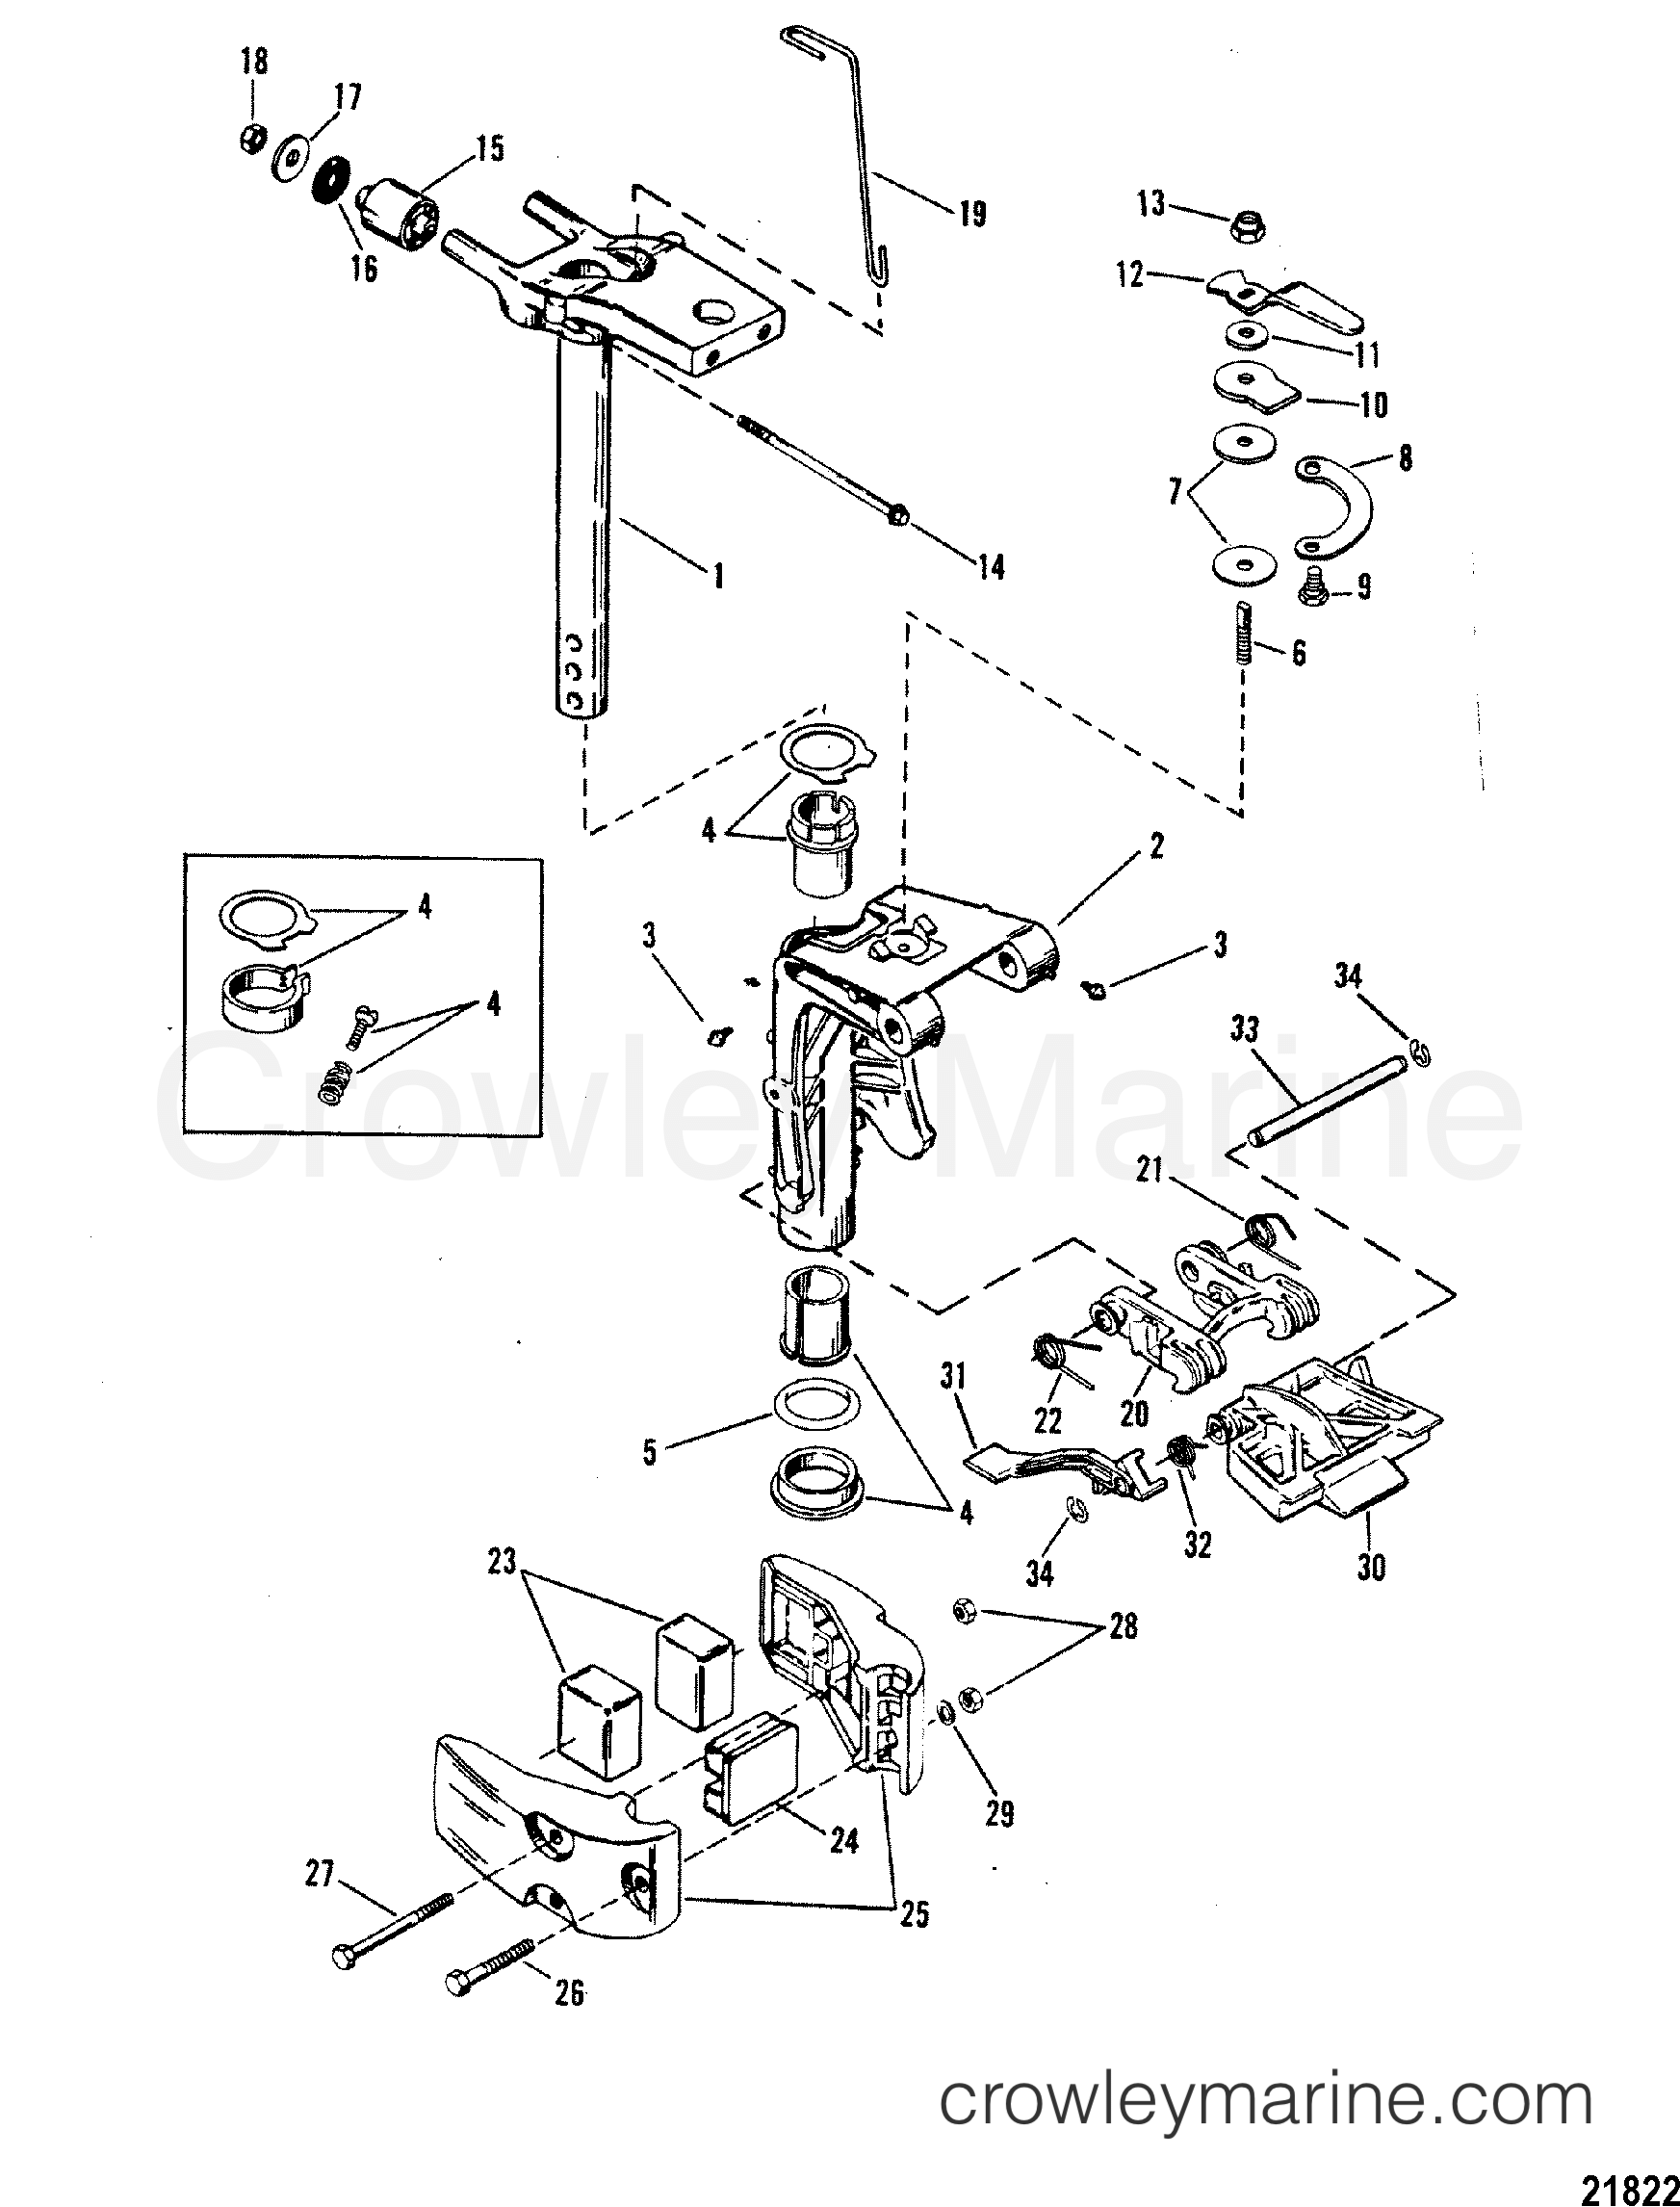 1988 Mercury Outboard 25 [E] - 1025302BC SWIVEL BRACKET ASSEMBLY section